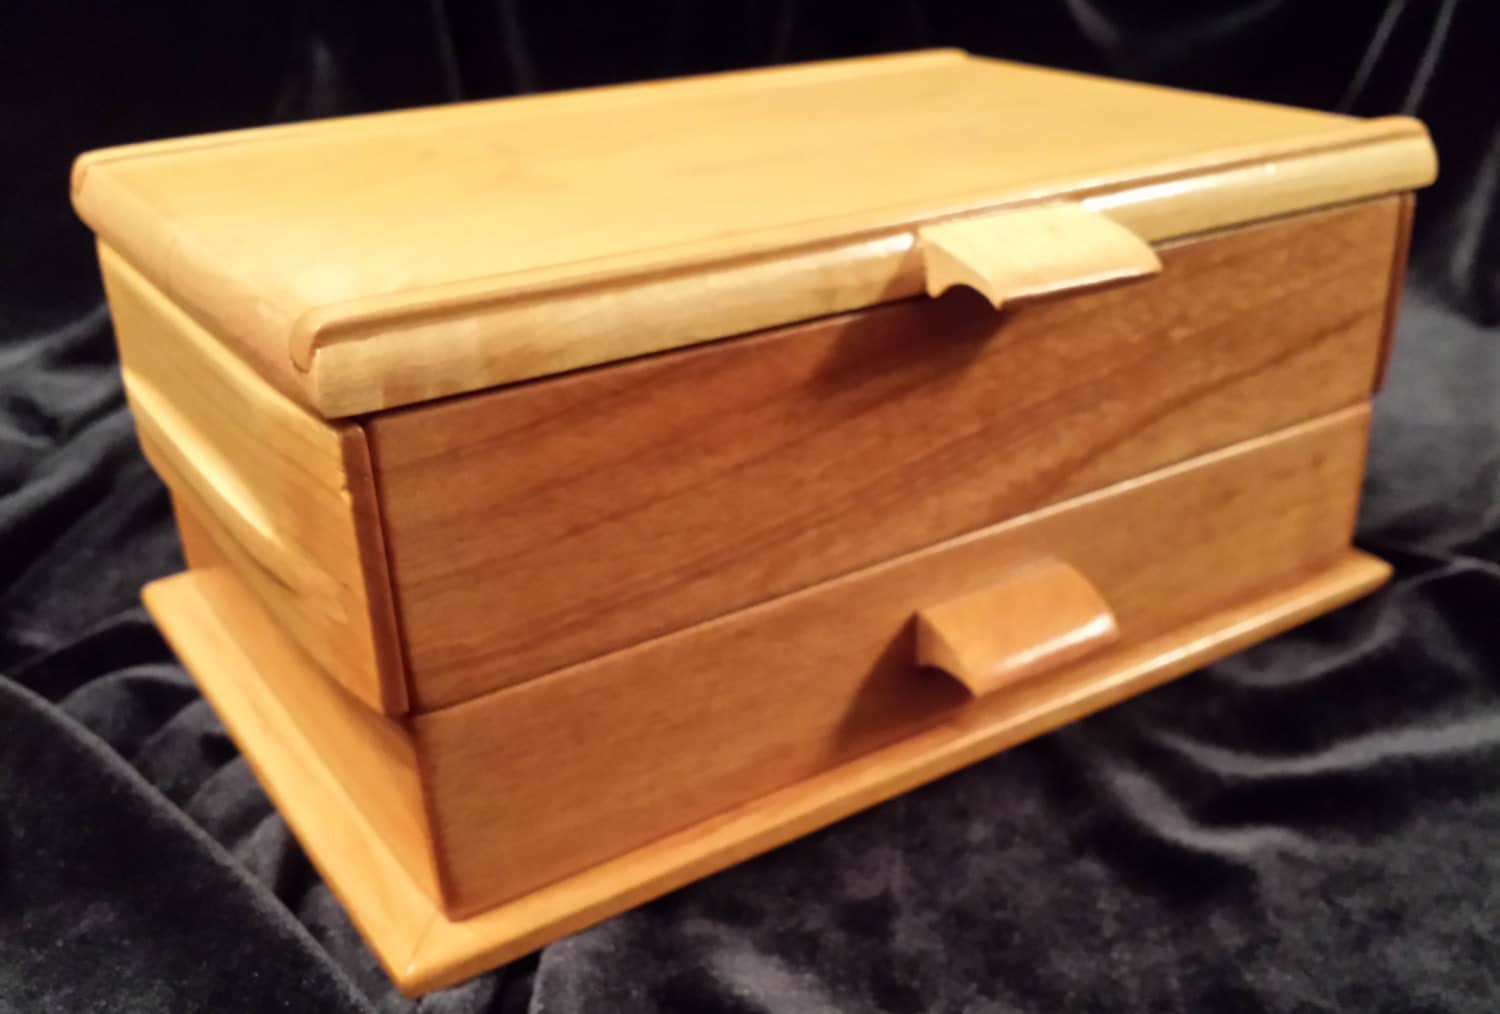 wood jewelry box solid natural cherry and maple hardwood